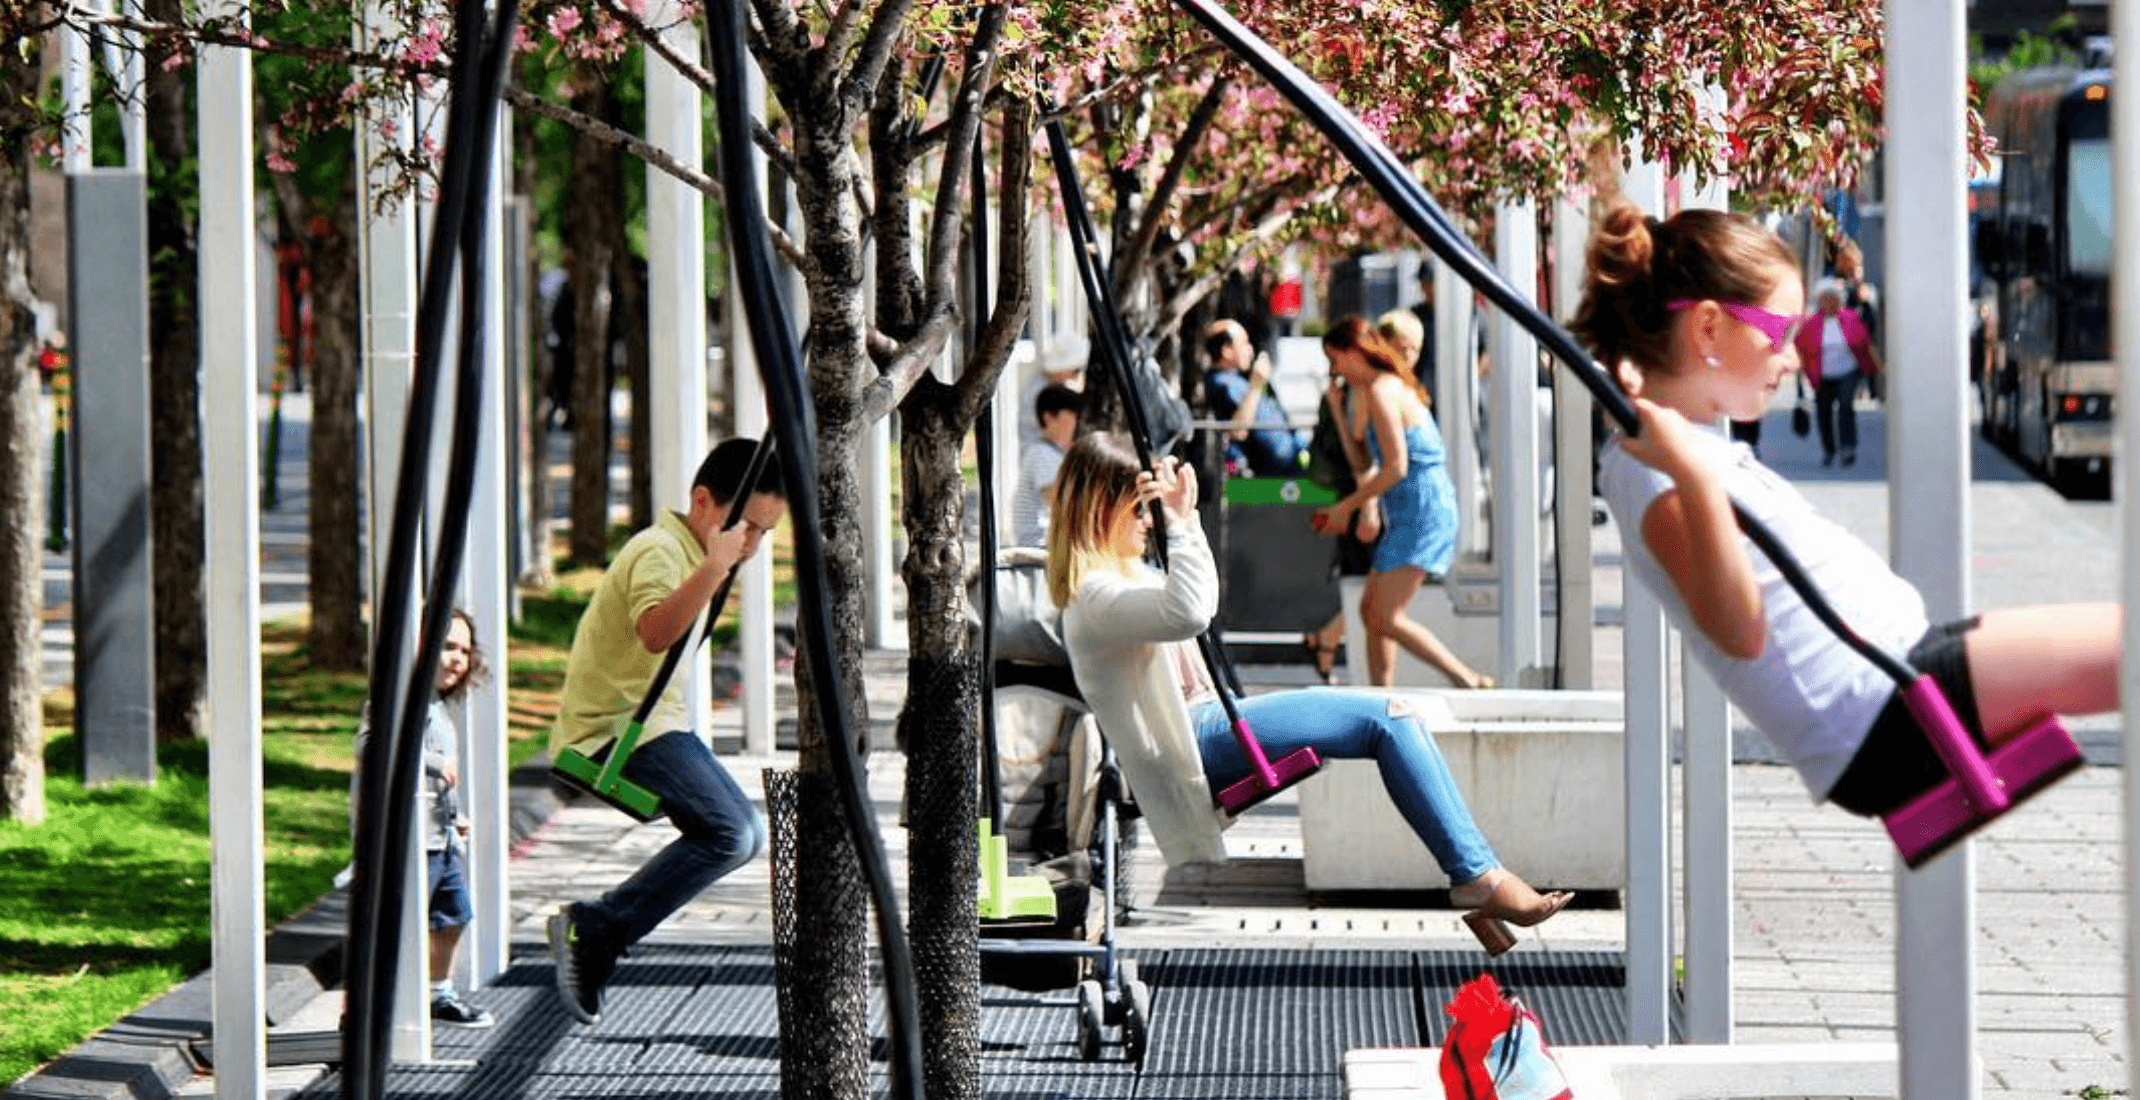 21 Swings are returning to Place des Arts this April